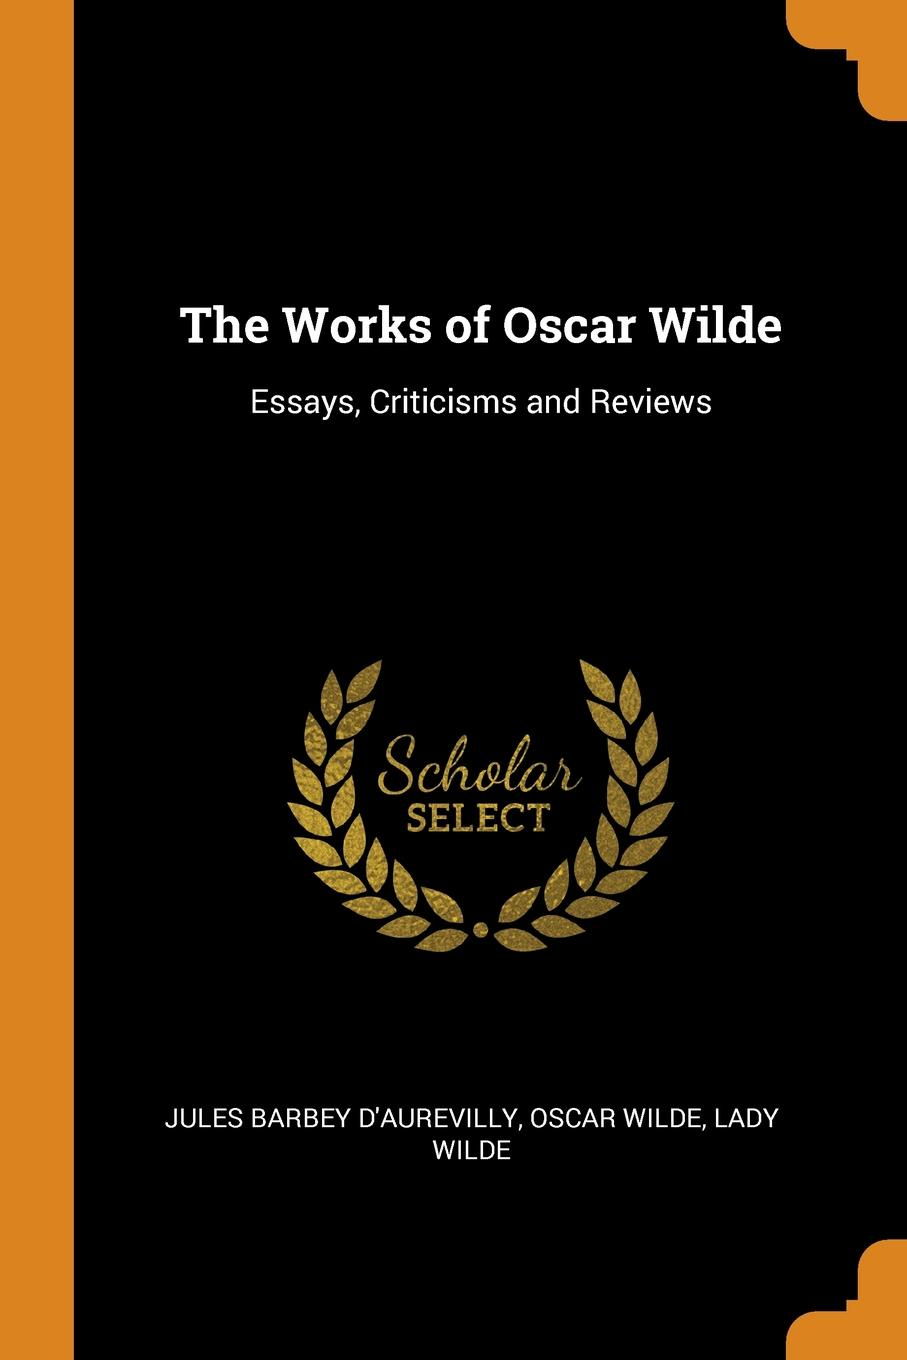 Jules Barbey d'Aurevilly, Oscar Wilde, Lady Wilde The Works of Oscar Wilde. Essays, Criticisms and Reviews